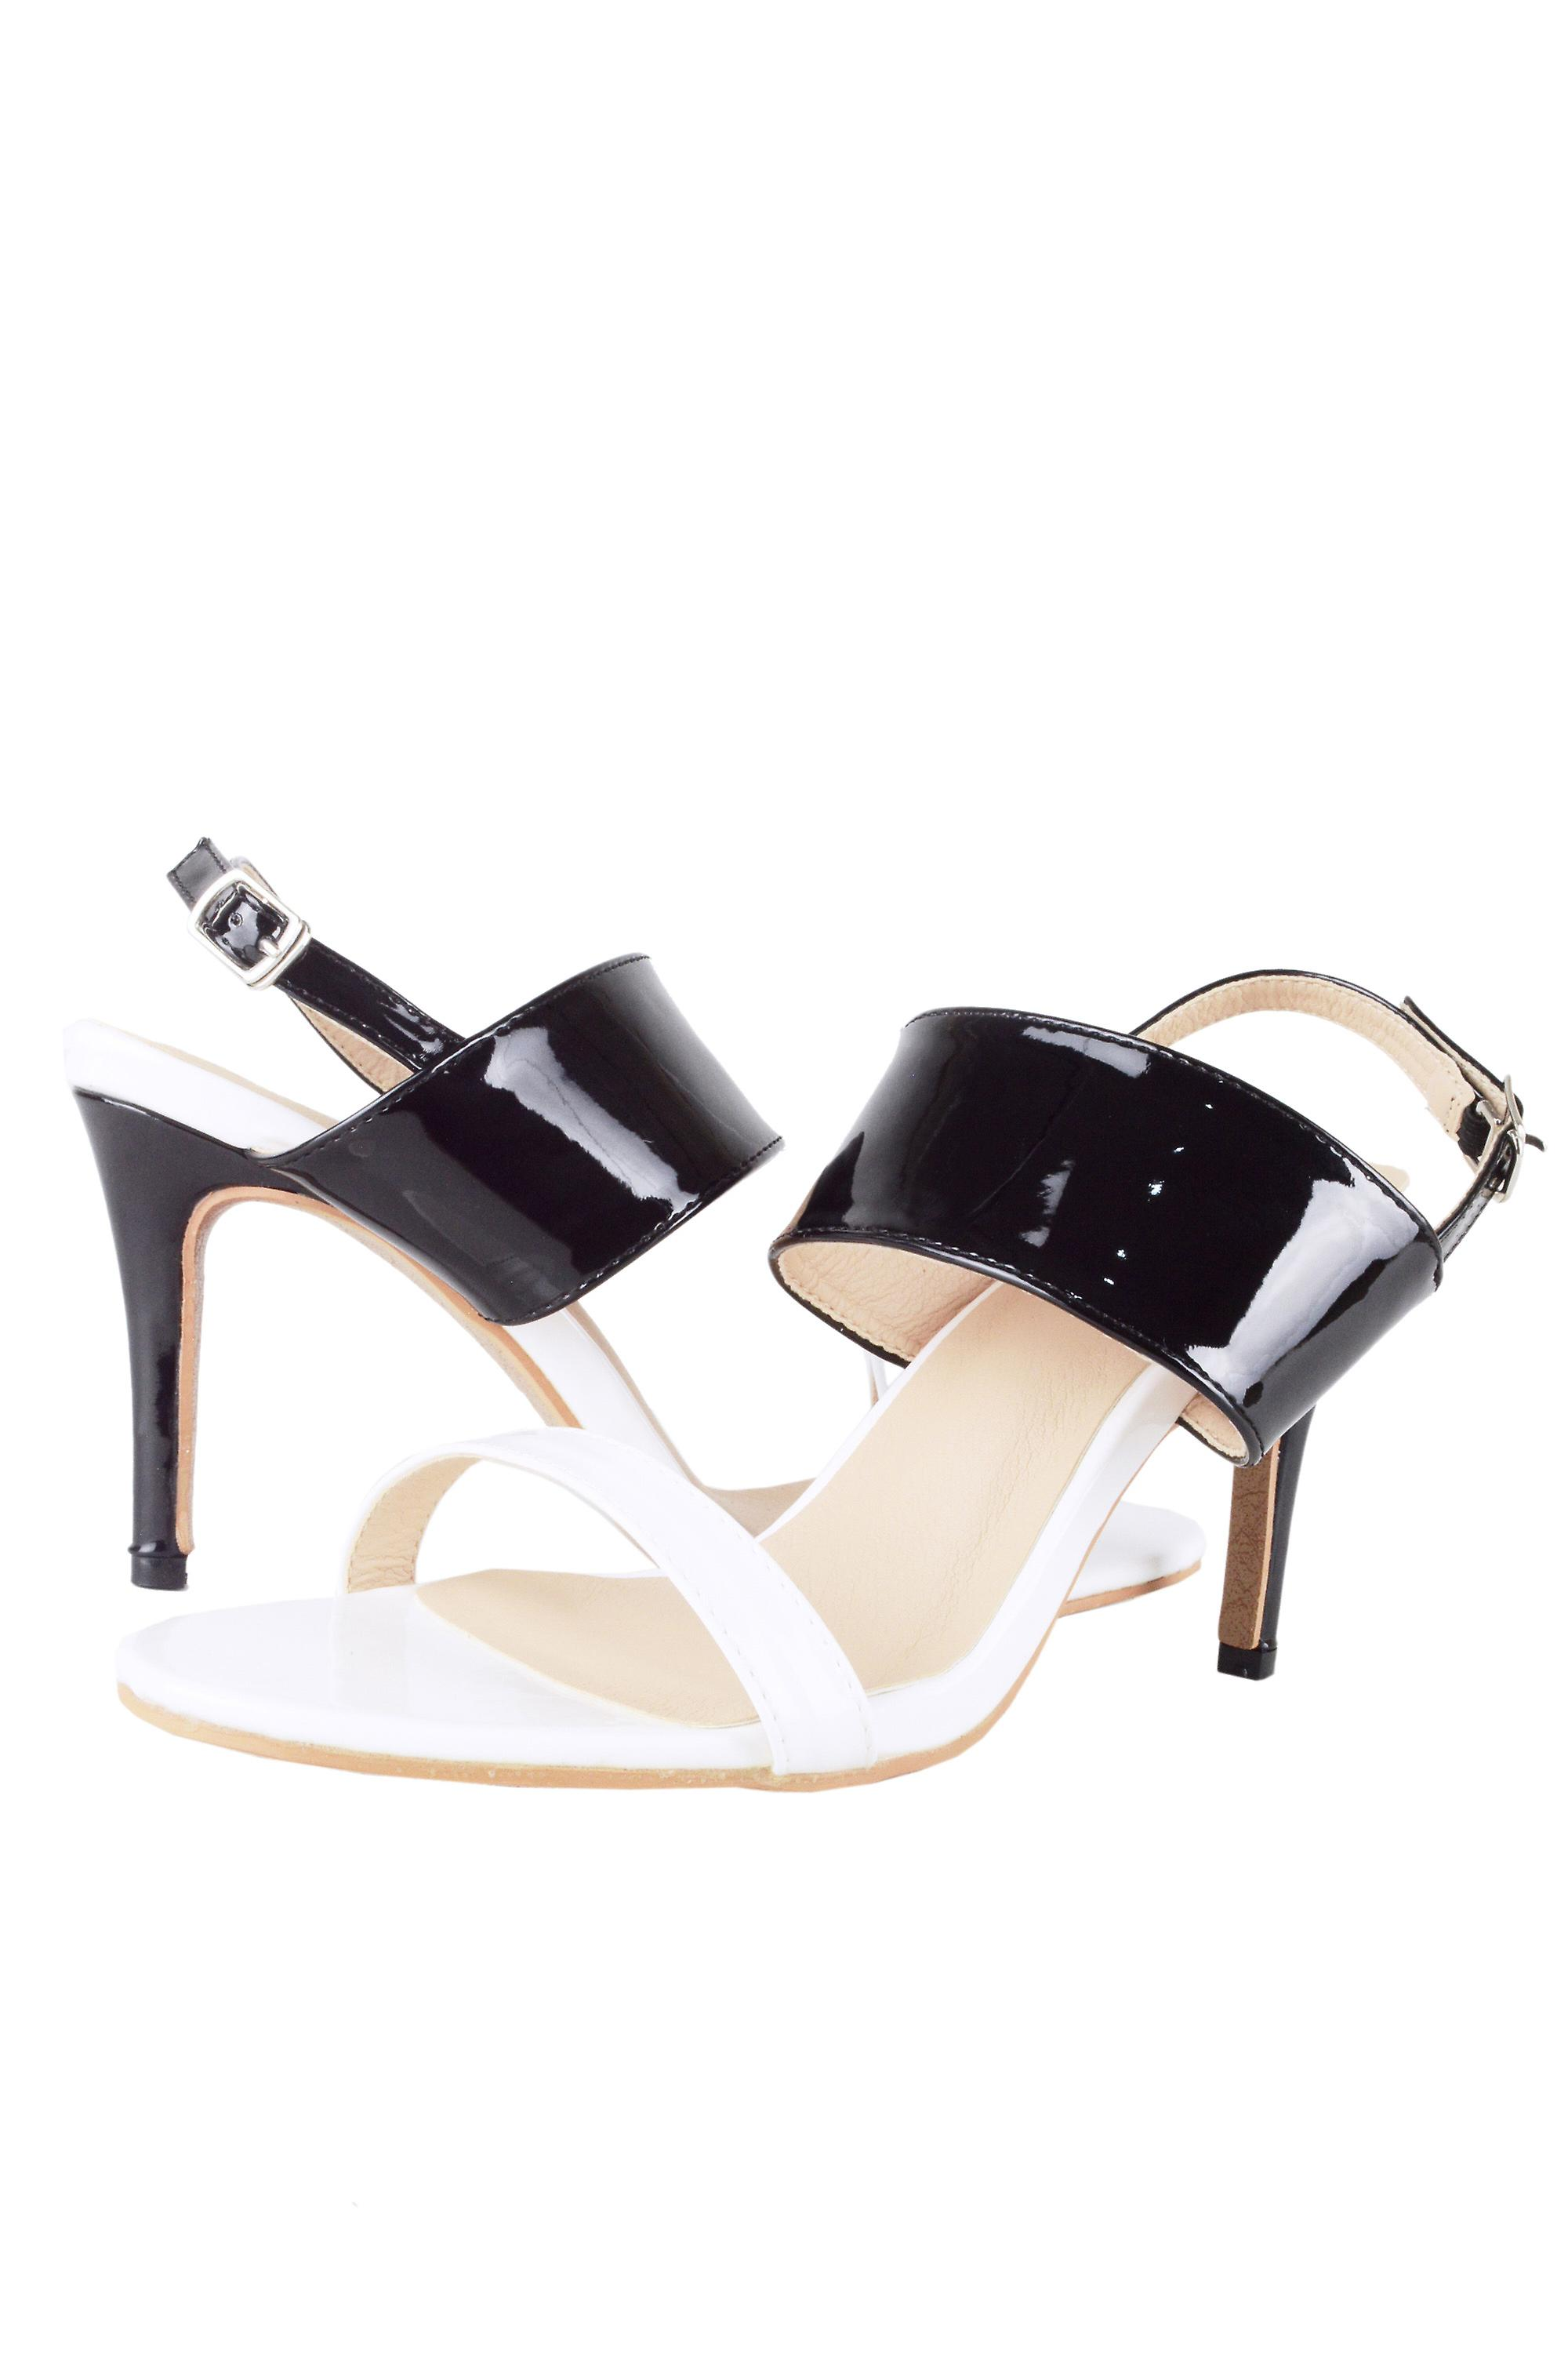 LMS Black & White Patent Sandal With Mid Heel